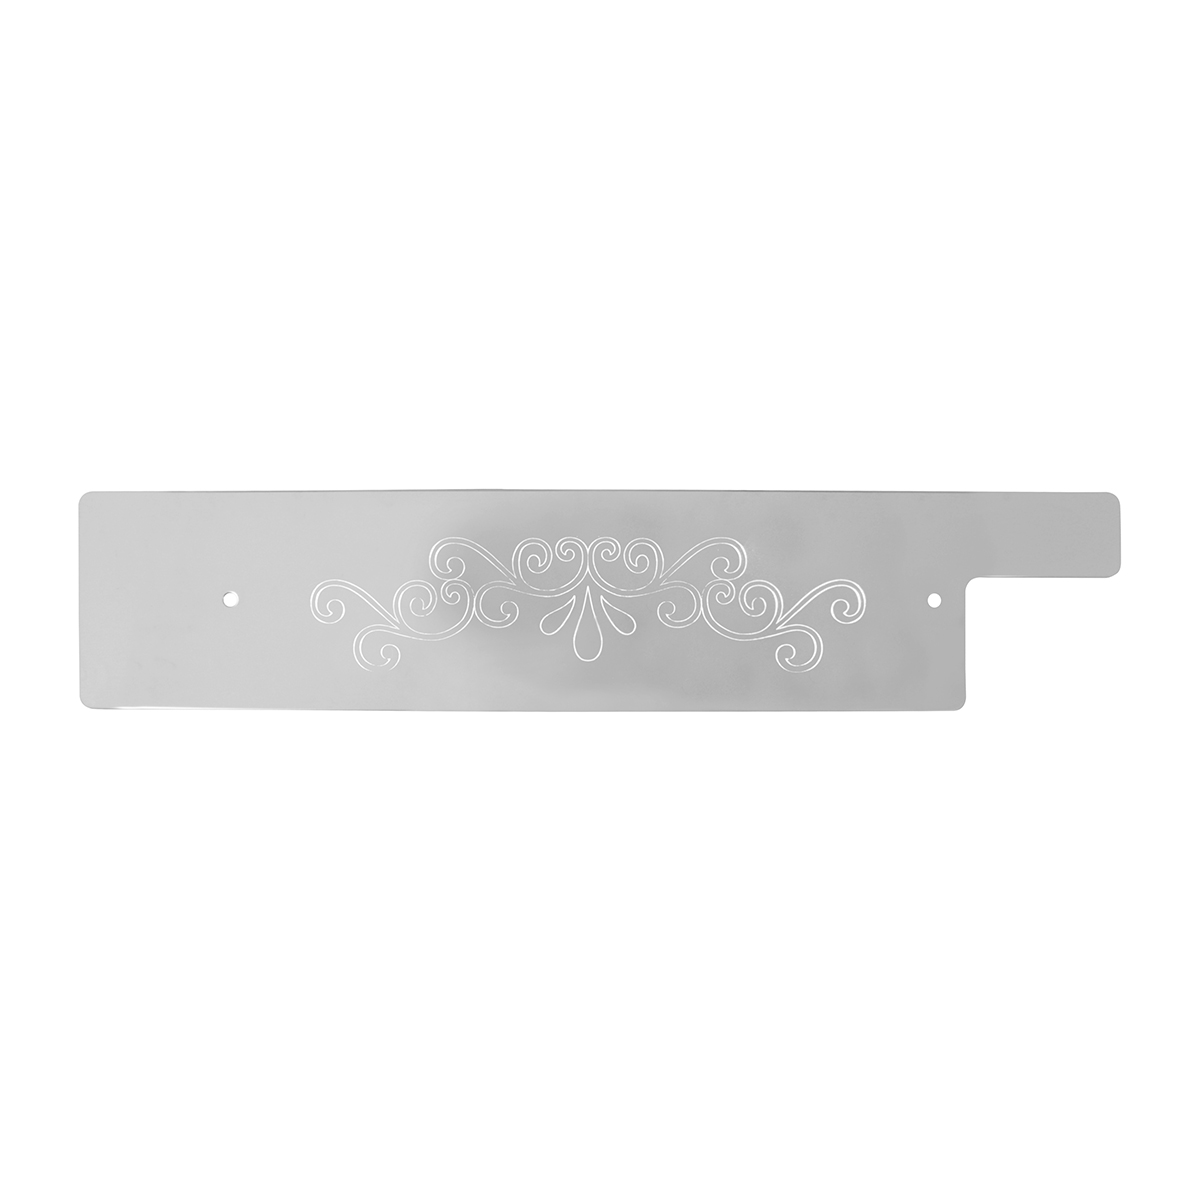 66991 Under Glove Box Plate for Peterbilt 370 Series 1995 to 2000